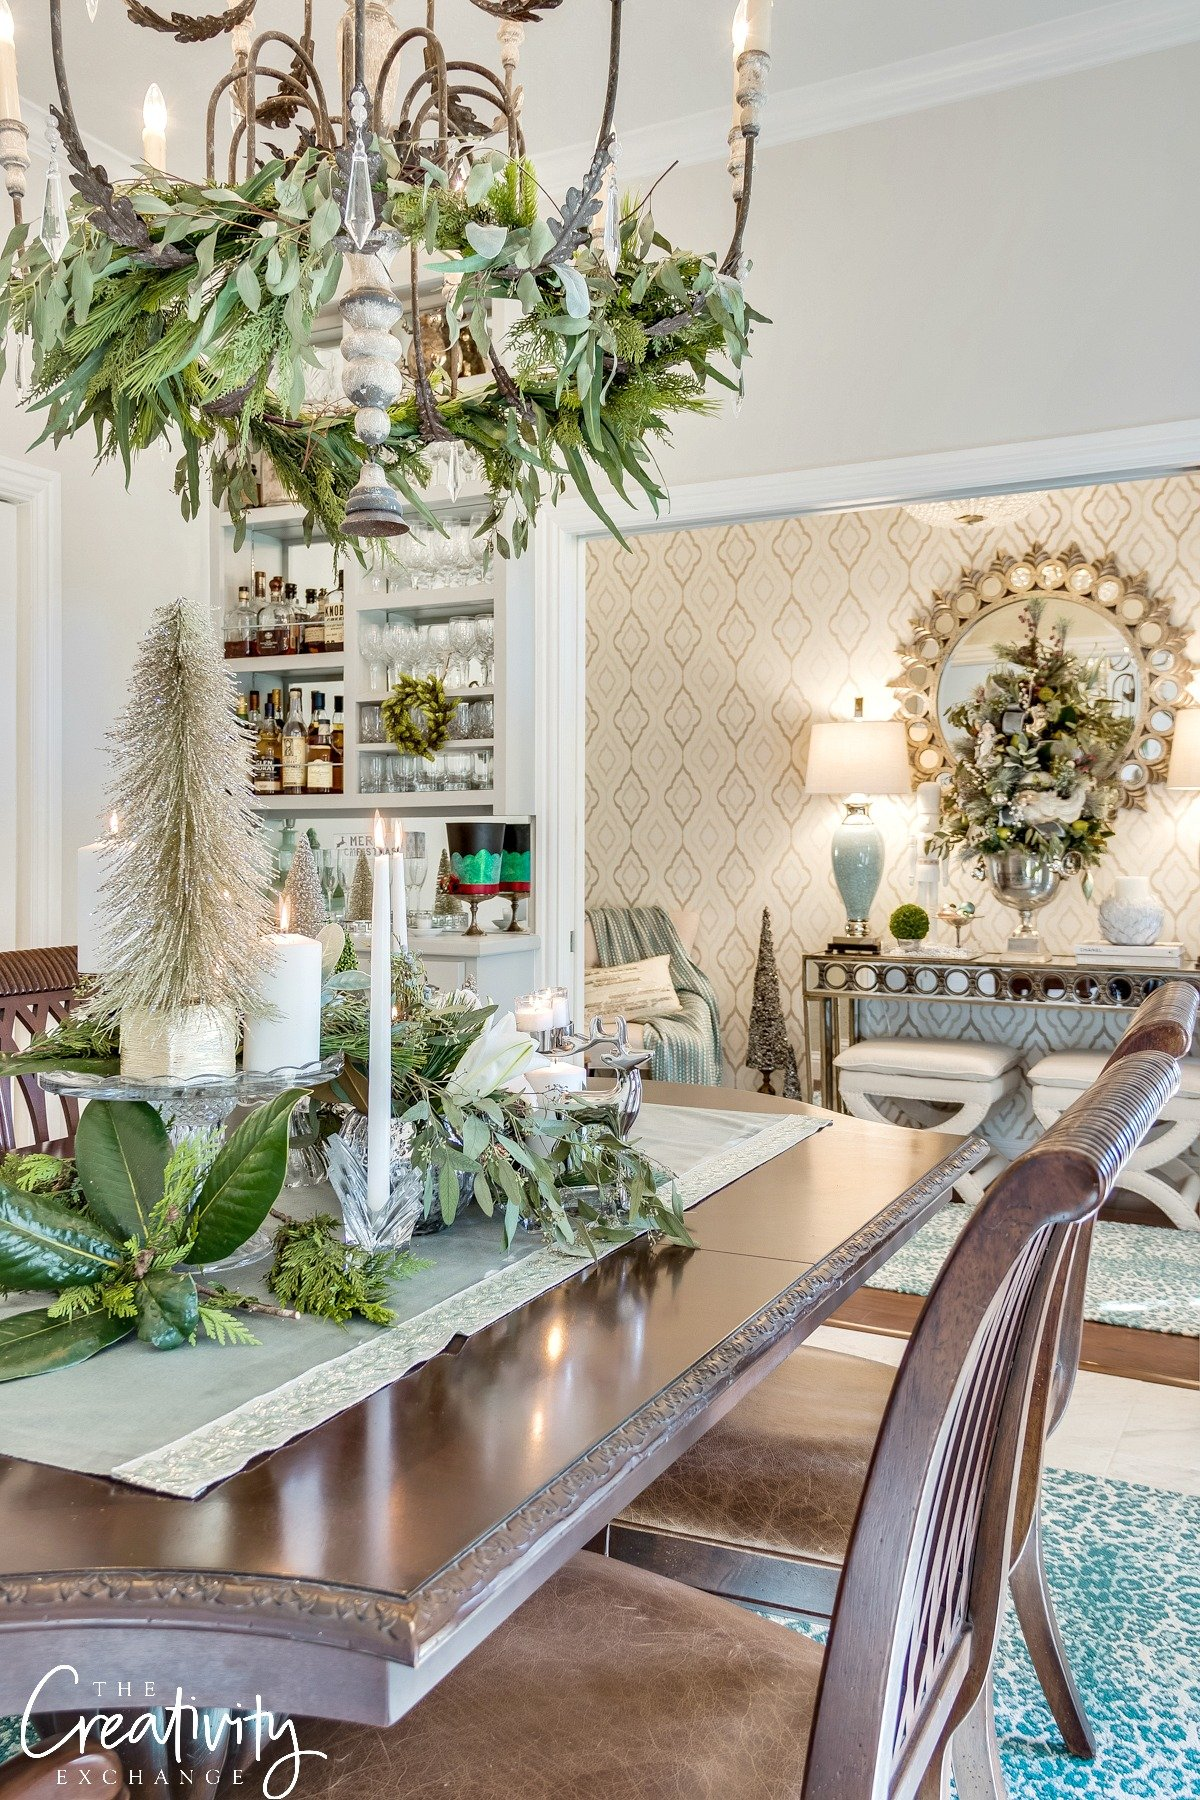 The Creativity Exchange's Christmas Home Tour.